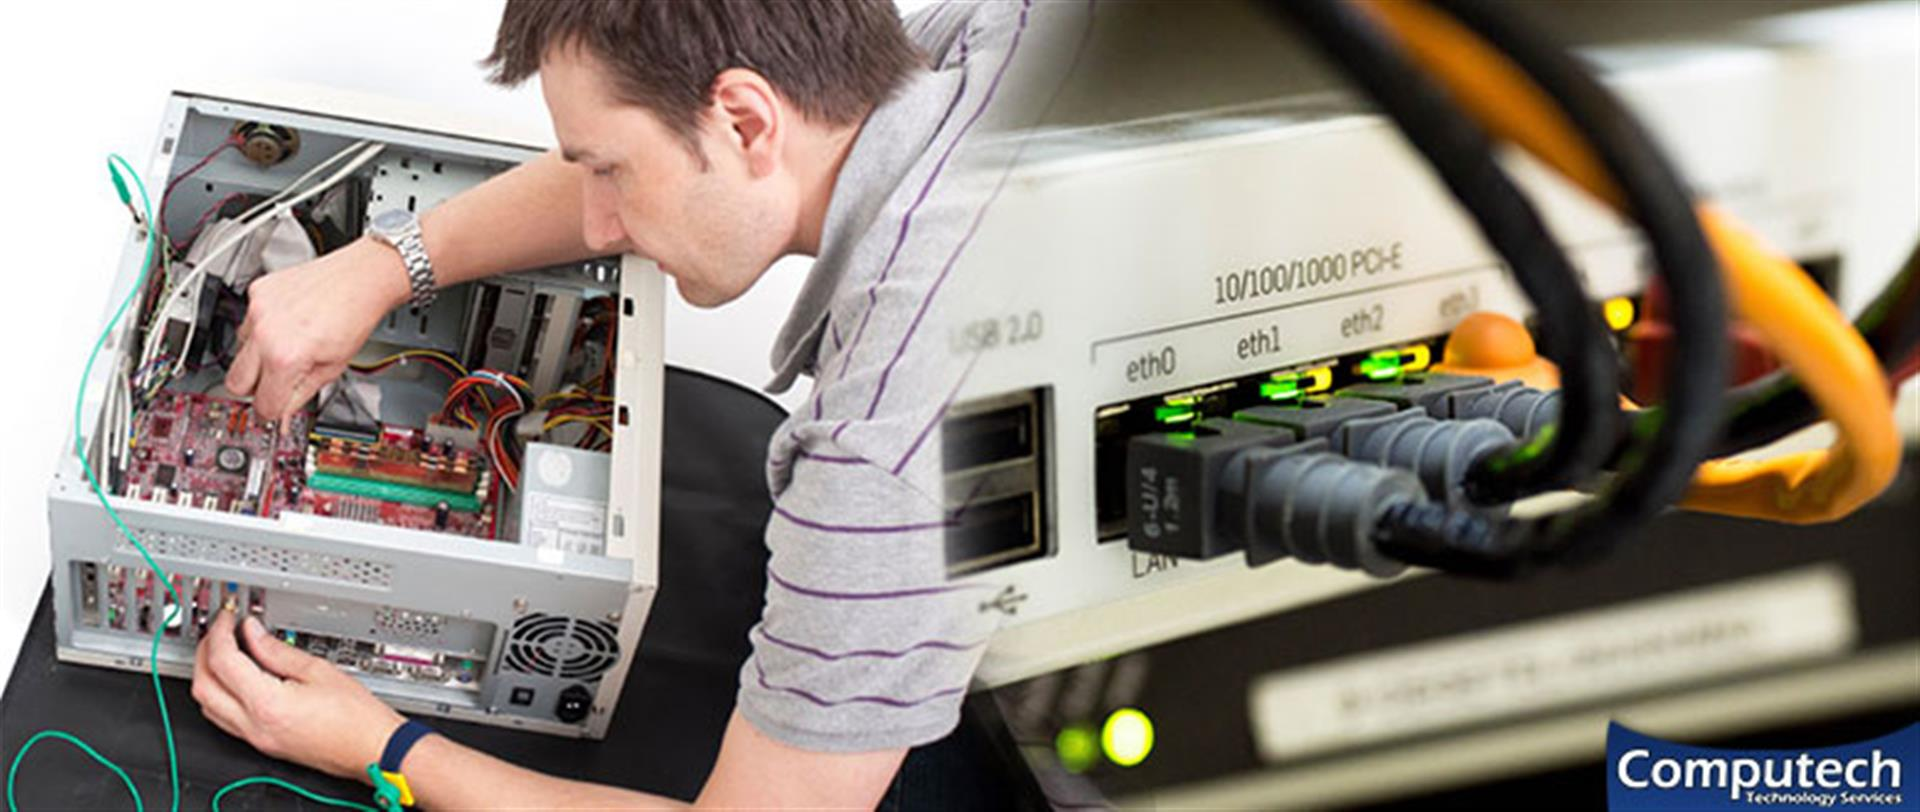 Apache Junction Arizona Onsite Computer & Printer Repairs, Networks, Telecom and High Speed Data Inside Wiring Services